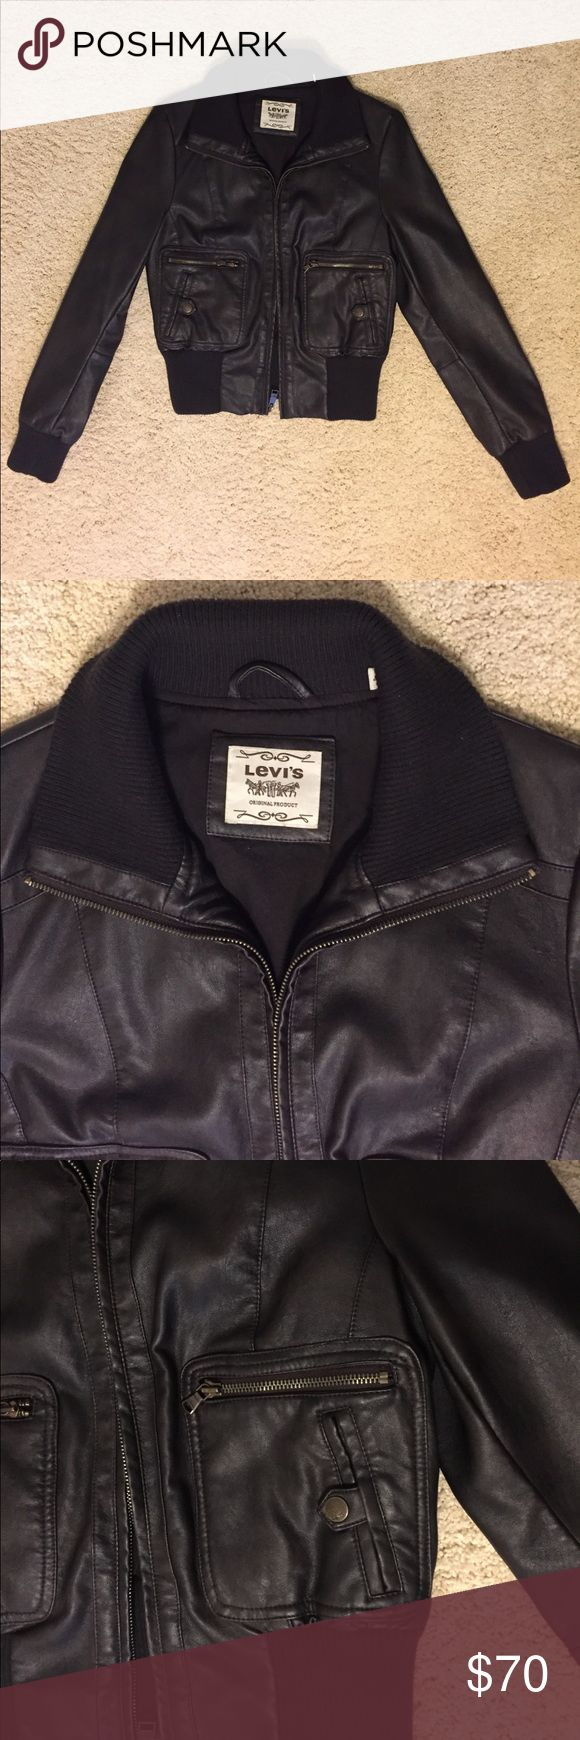 Levi's Brown Faux Leather Bomber Jacket Levi's Faux Leather Bomber Jacket, size small. Never worn, in perfect condition. Levi's Jackets & Coats